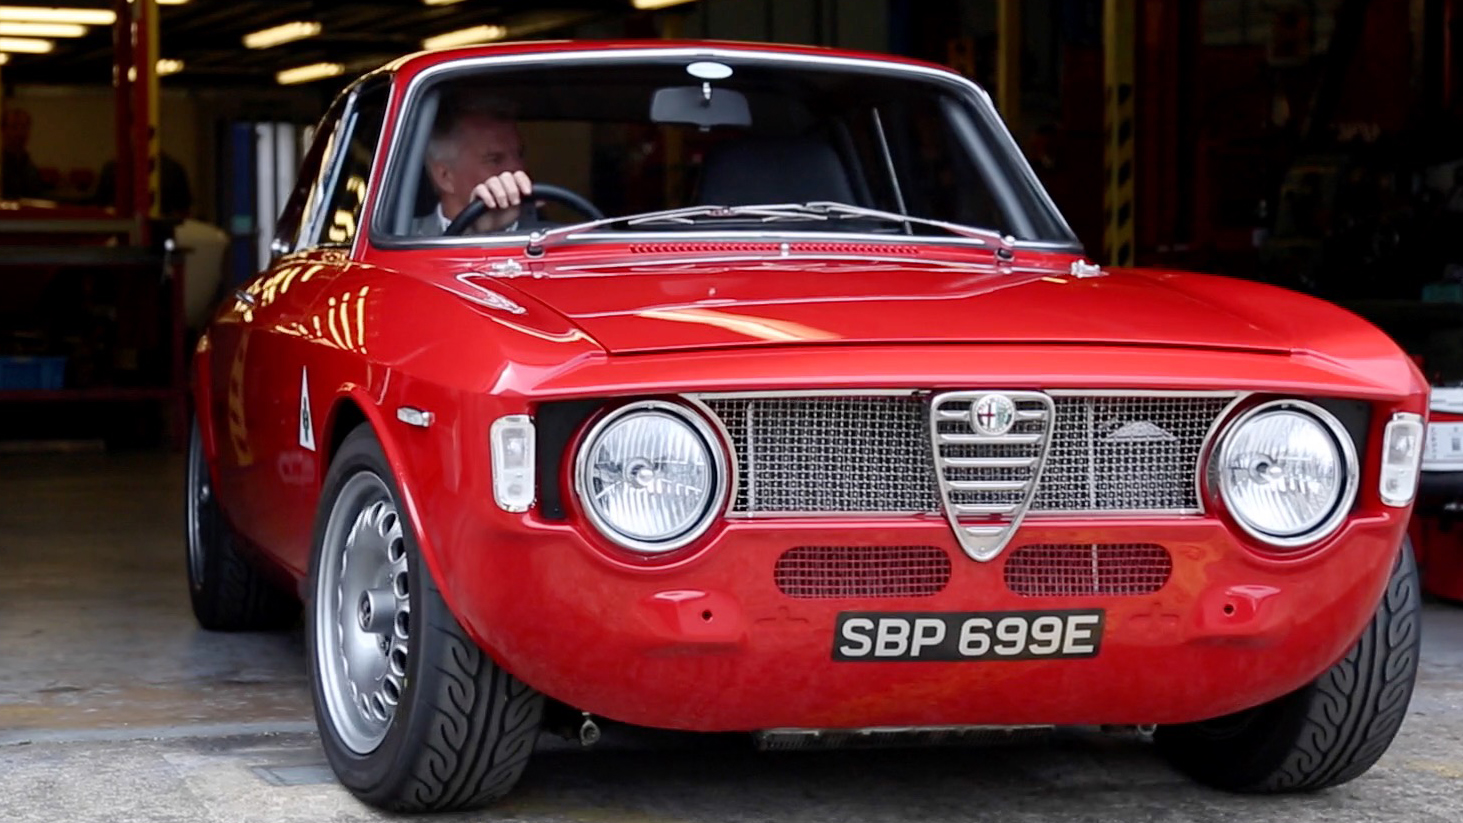 Video: The Alfa Romeo Giulia Sprint is automotive aristocracy